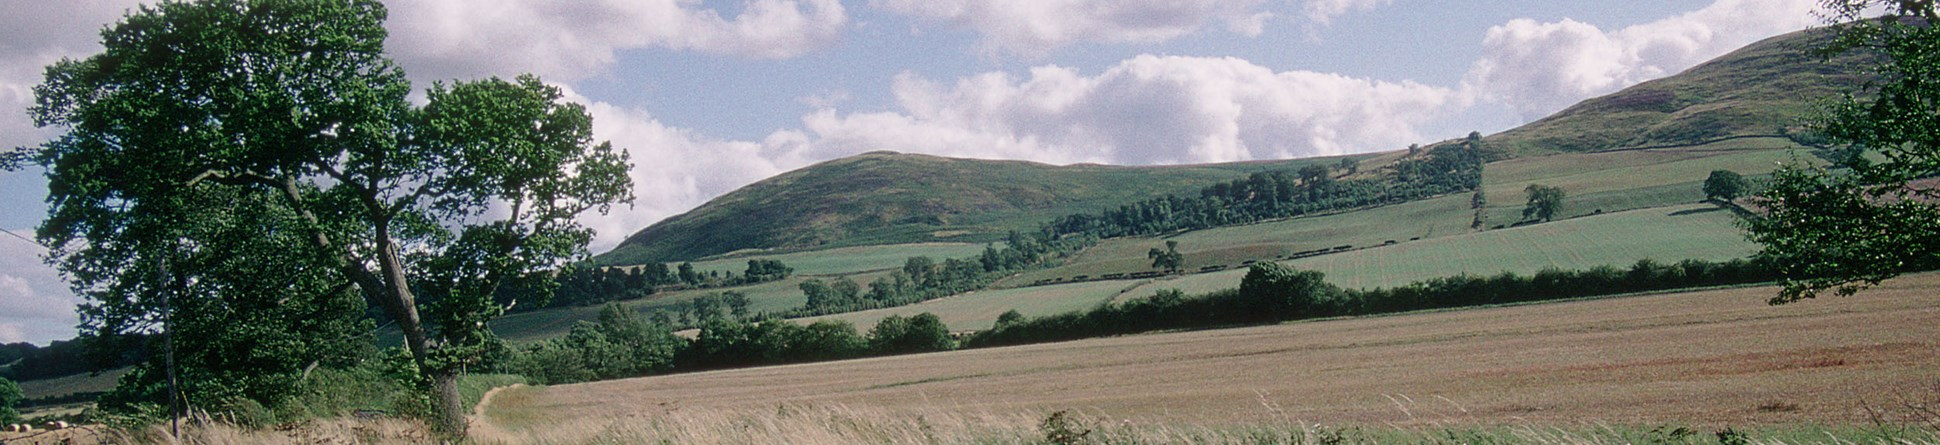 The battlefield of Homildon Hill, Northumberland